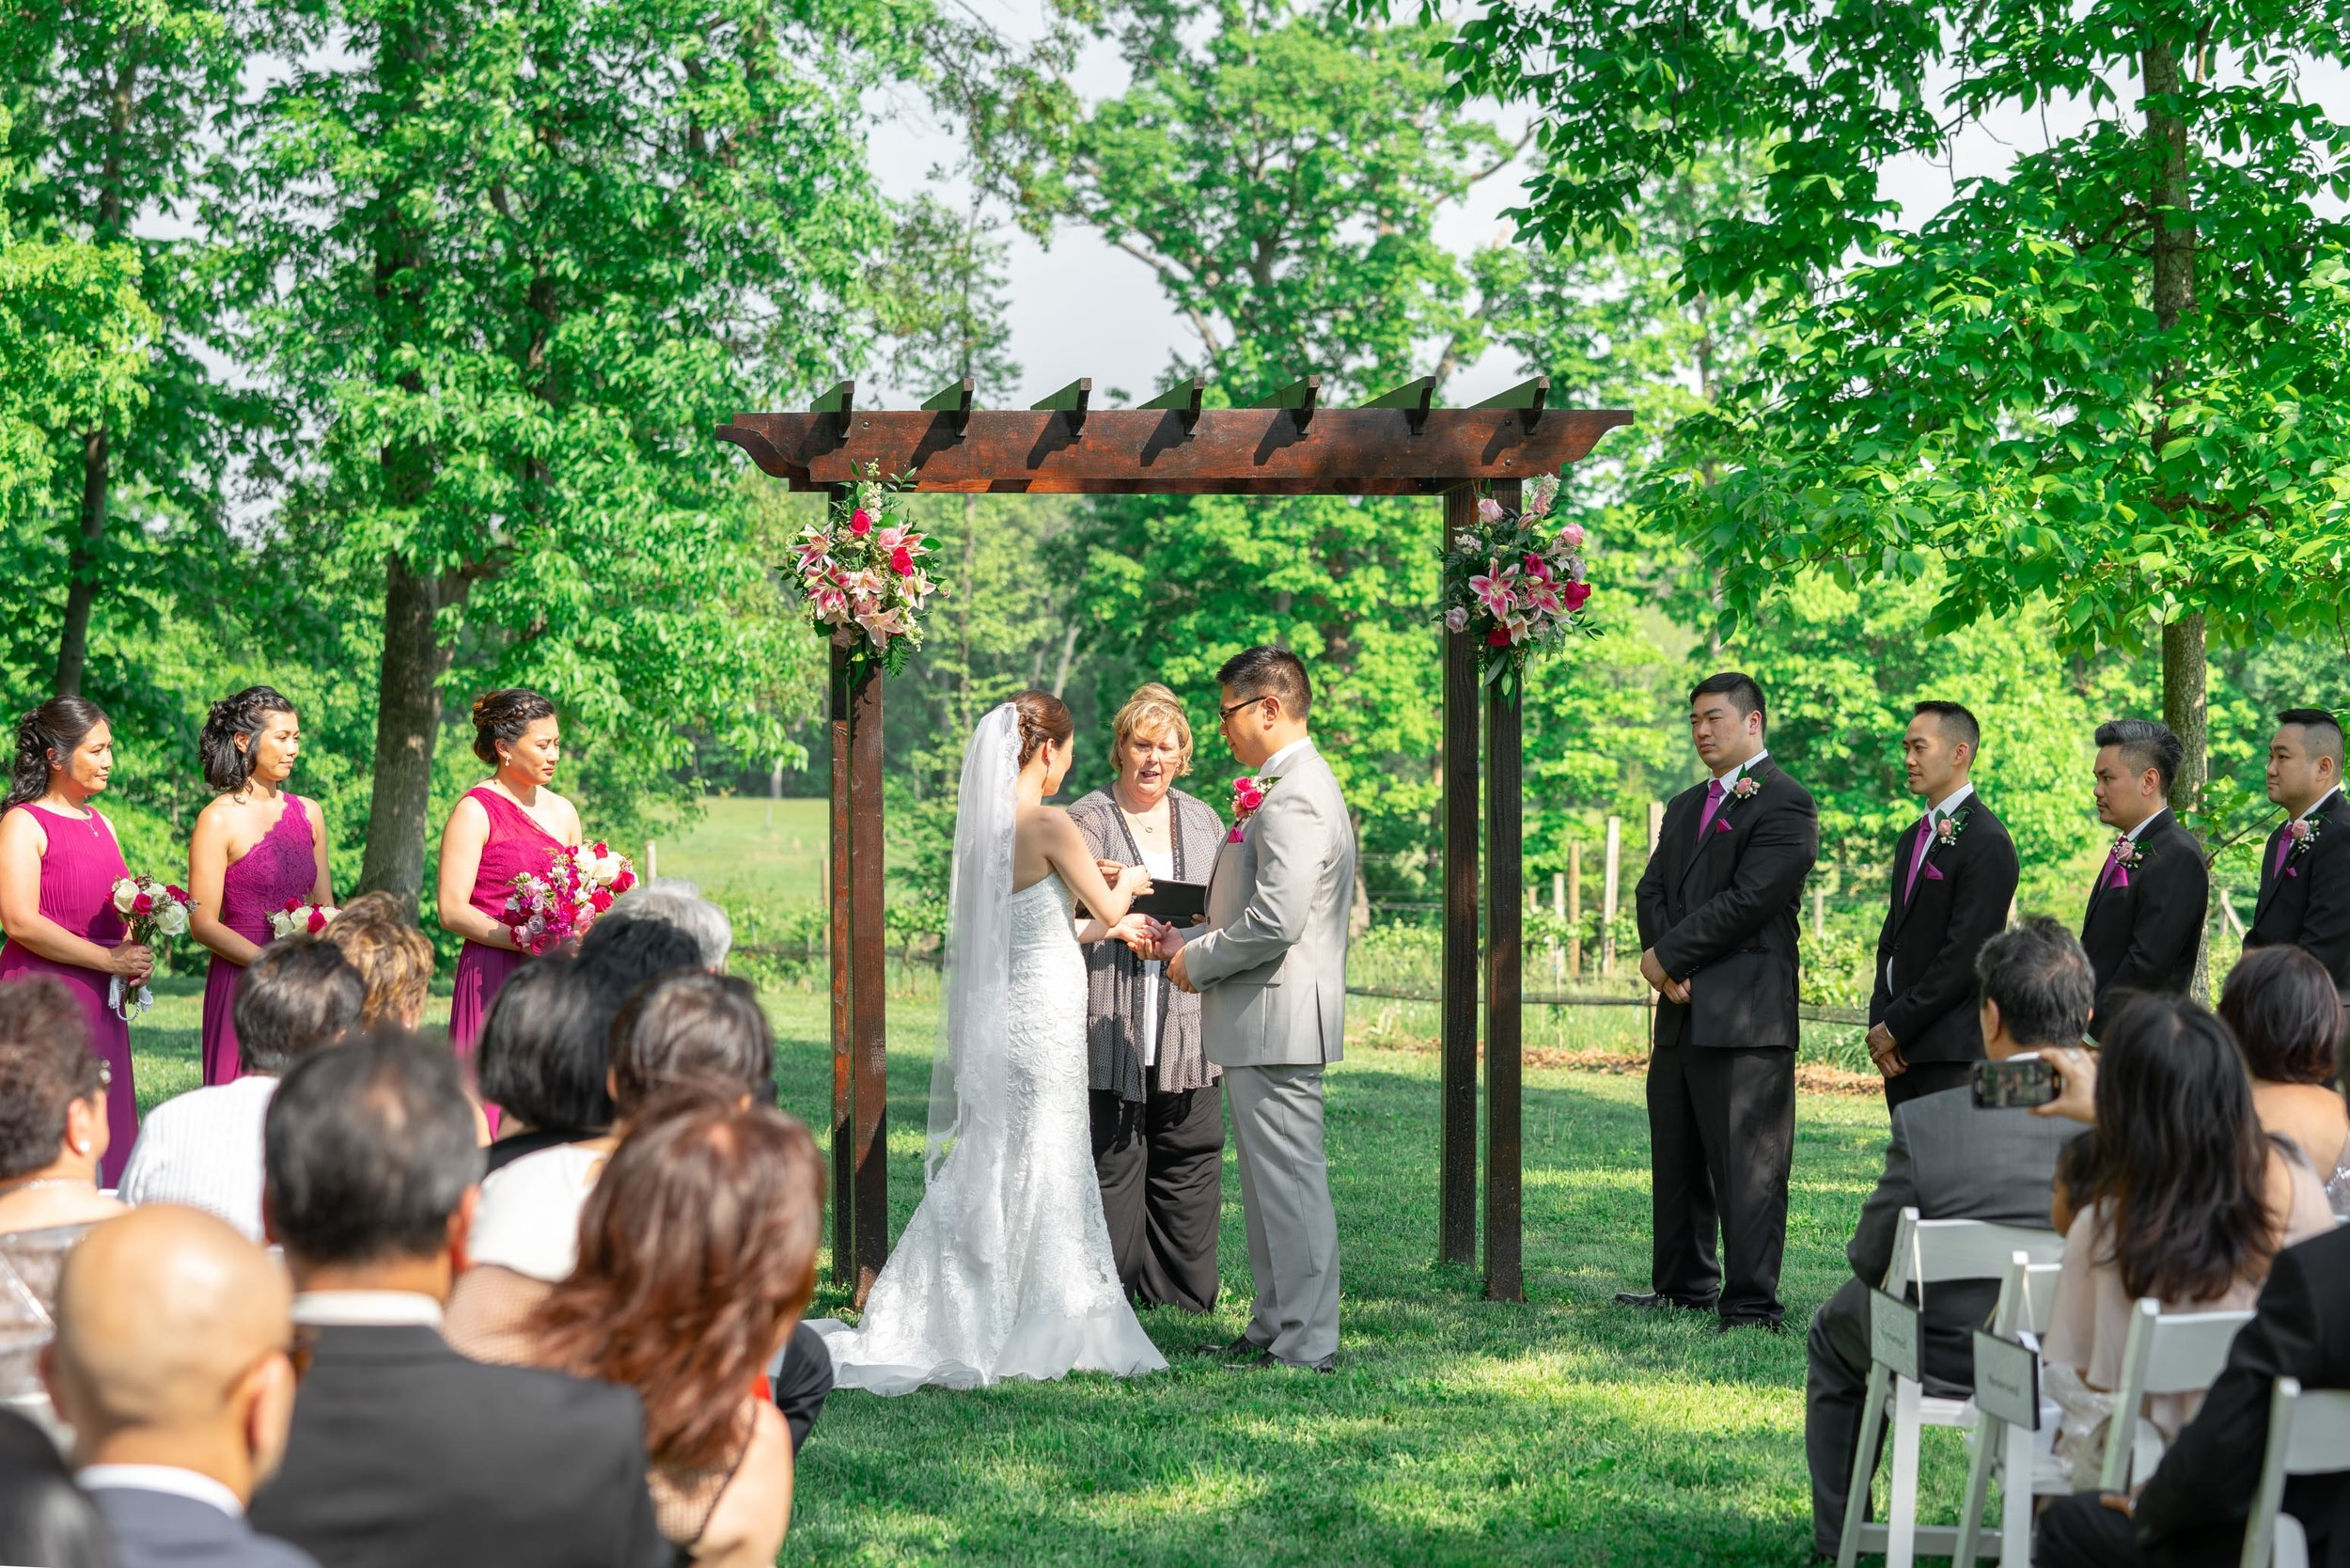 Sony a7riii and G master 70-200 lens for a wedding